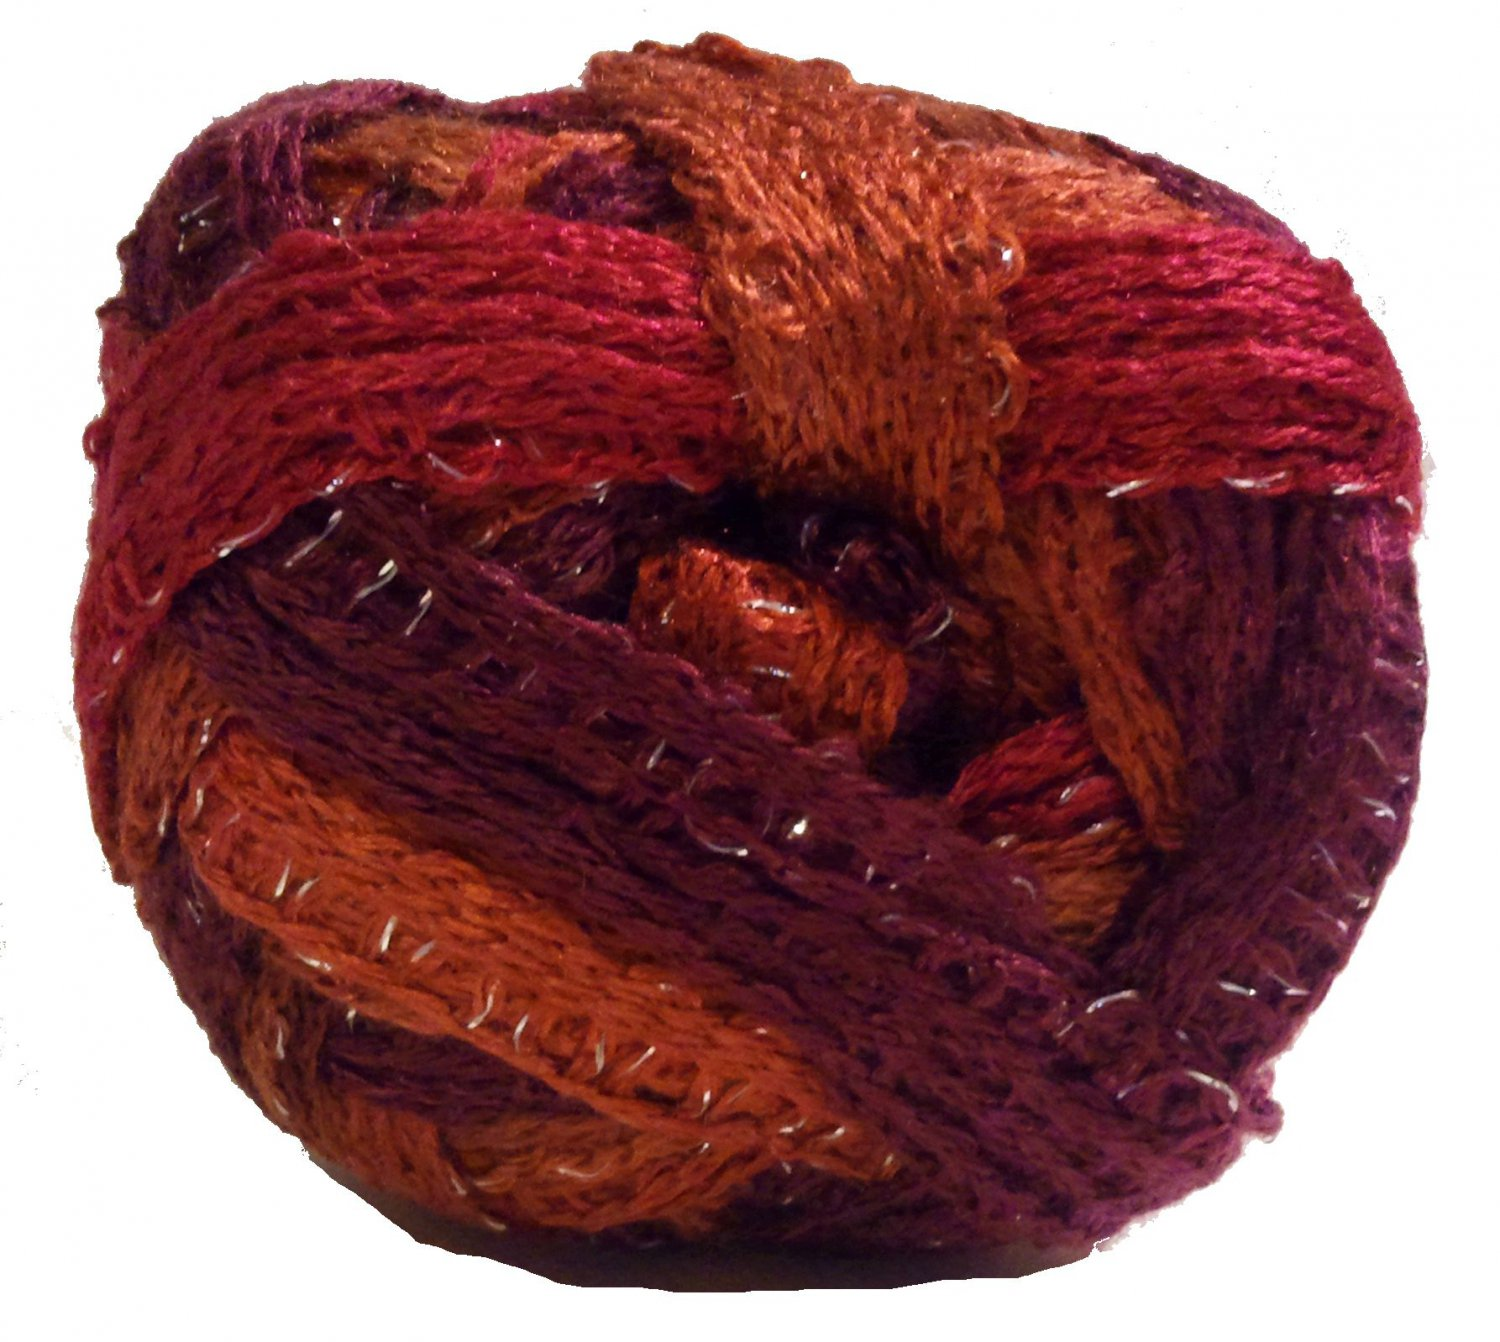 Sashay Yarn Red Heart 3.5 oz Salsa 1949 Super Bulky 6 Ruffle Scarf Yarn Red Orange Magenta Rust